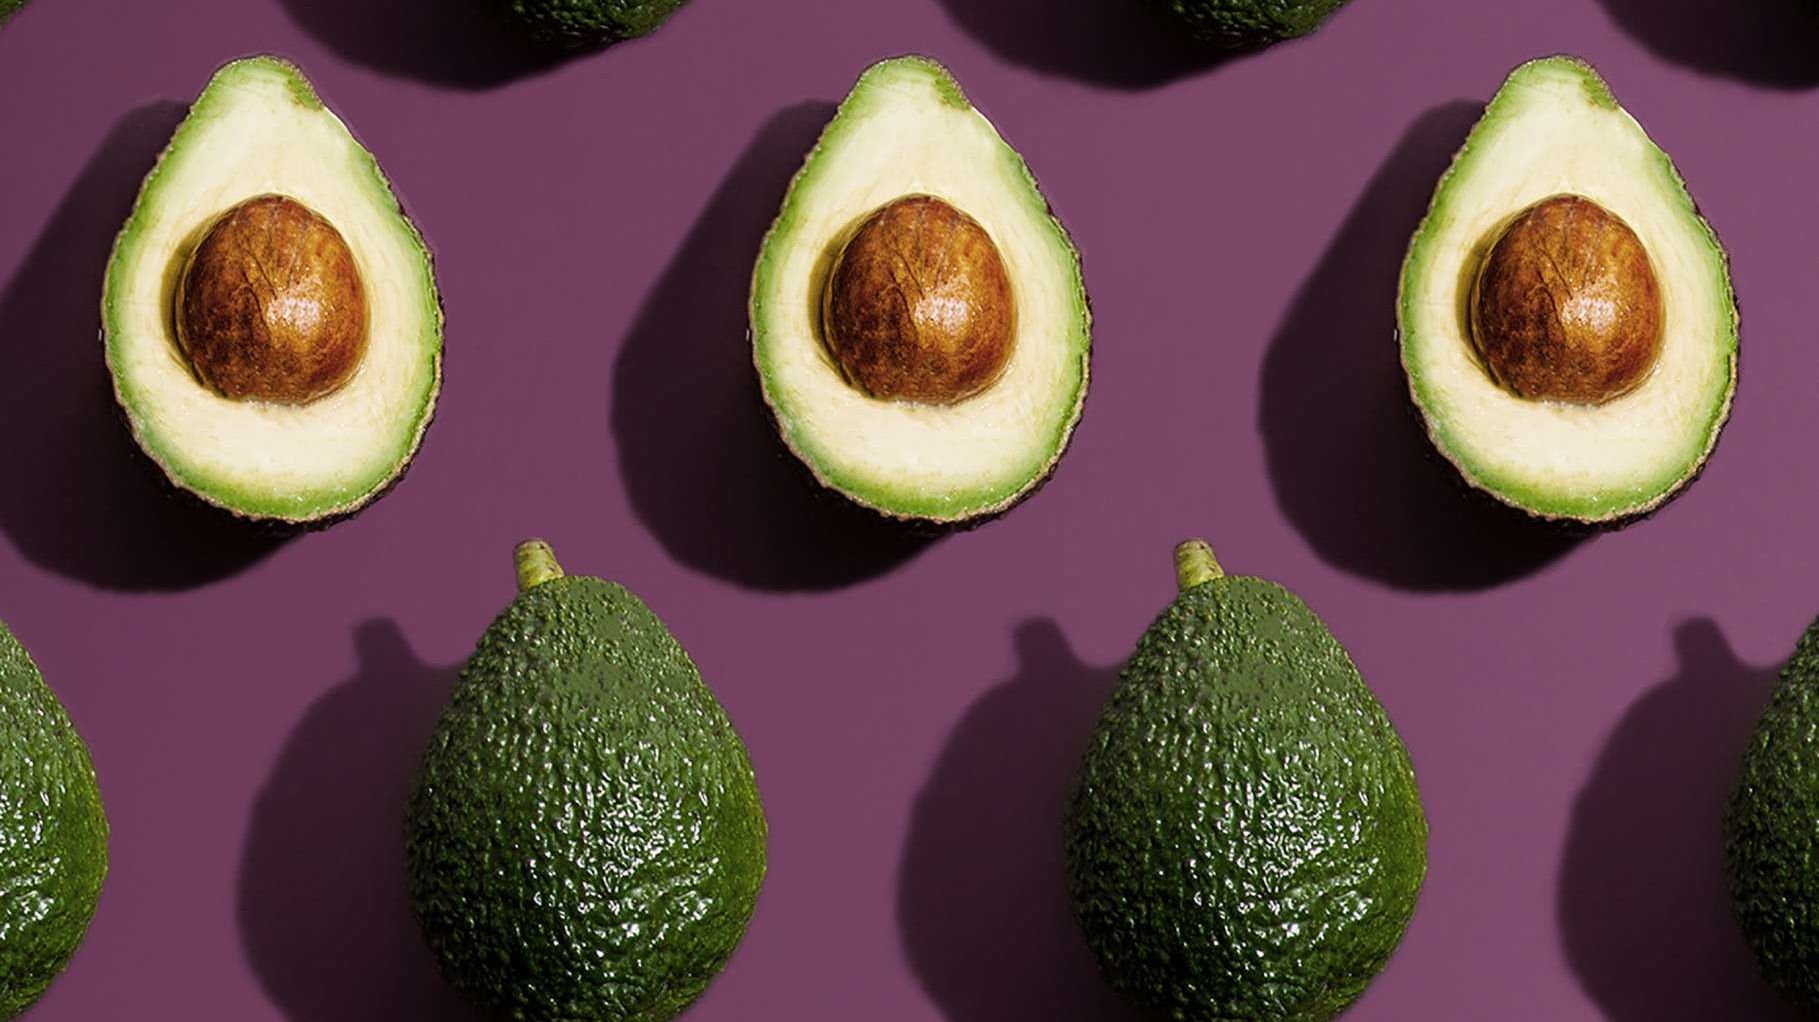 This Startup Makes Ecofriendly Utensils Out of Discarded Avocado Pits